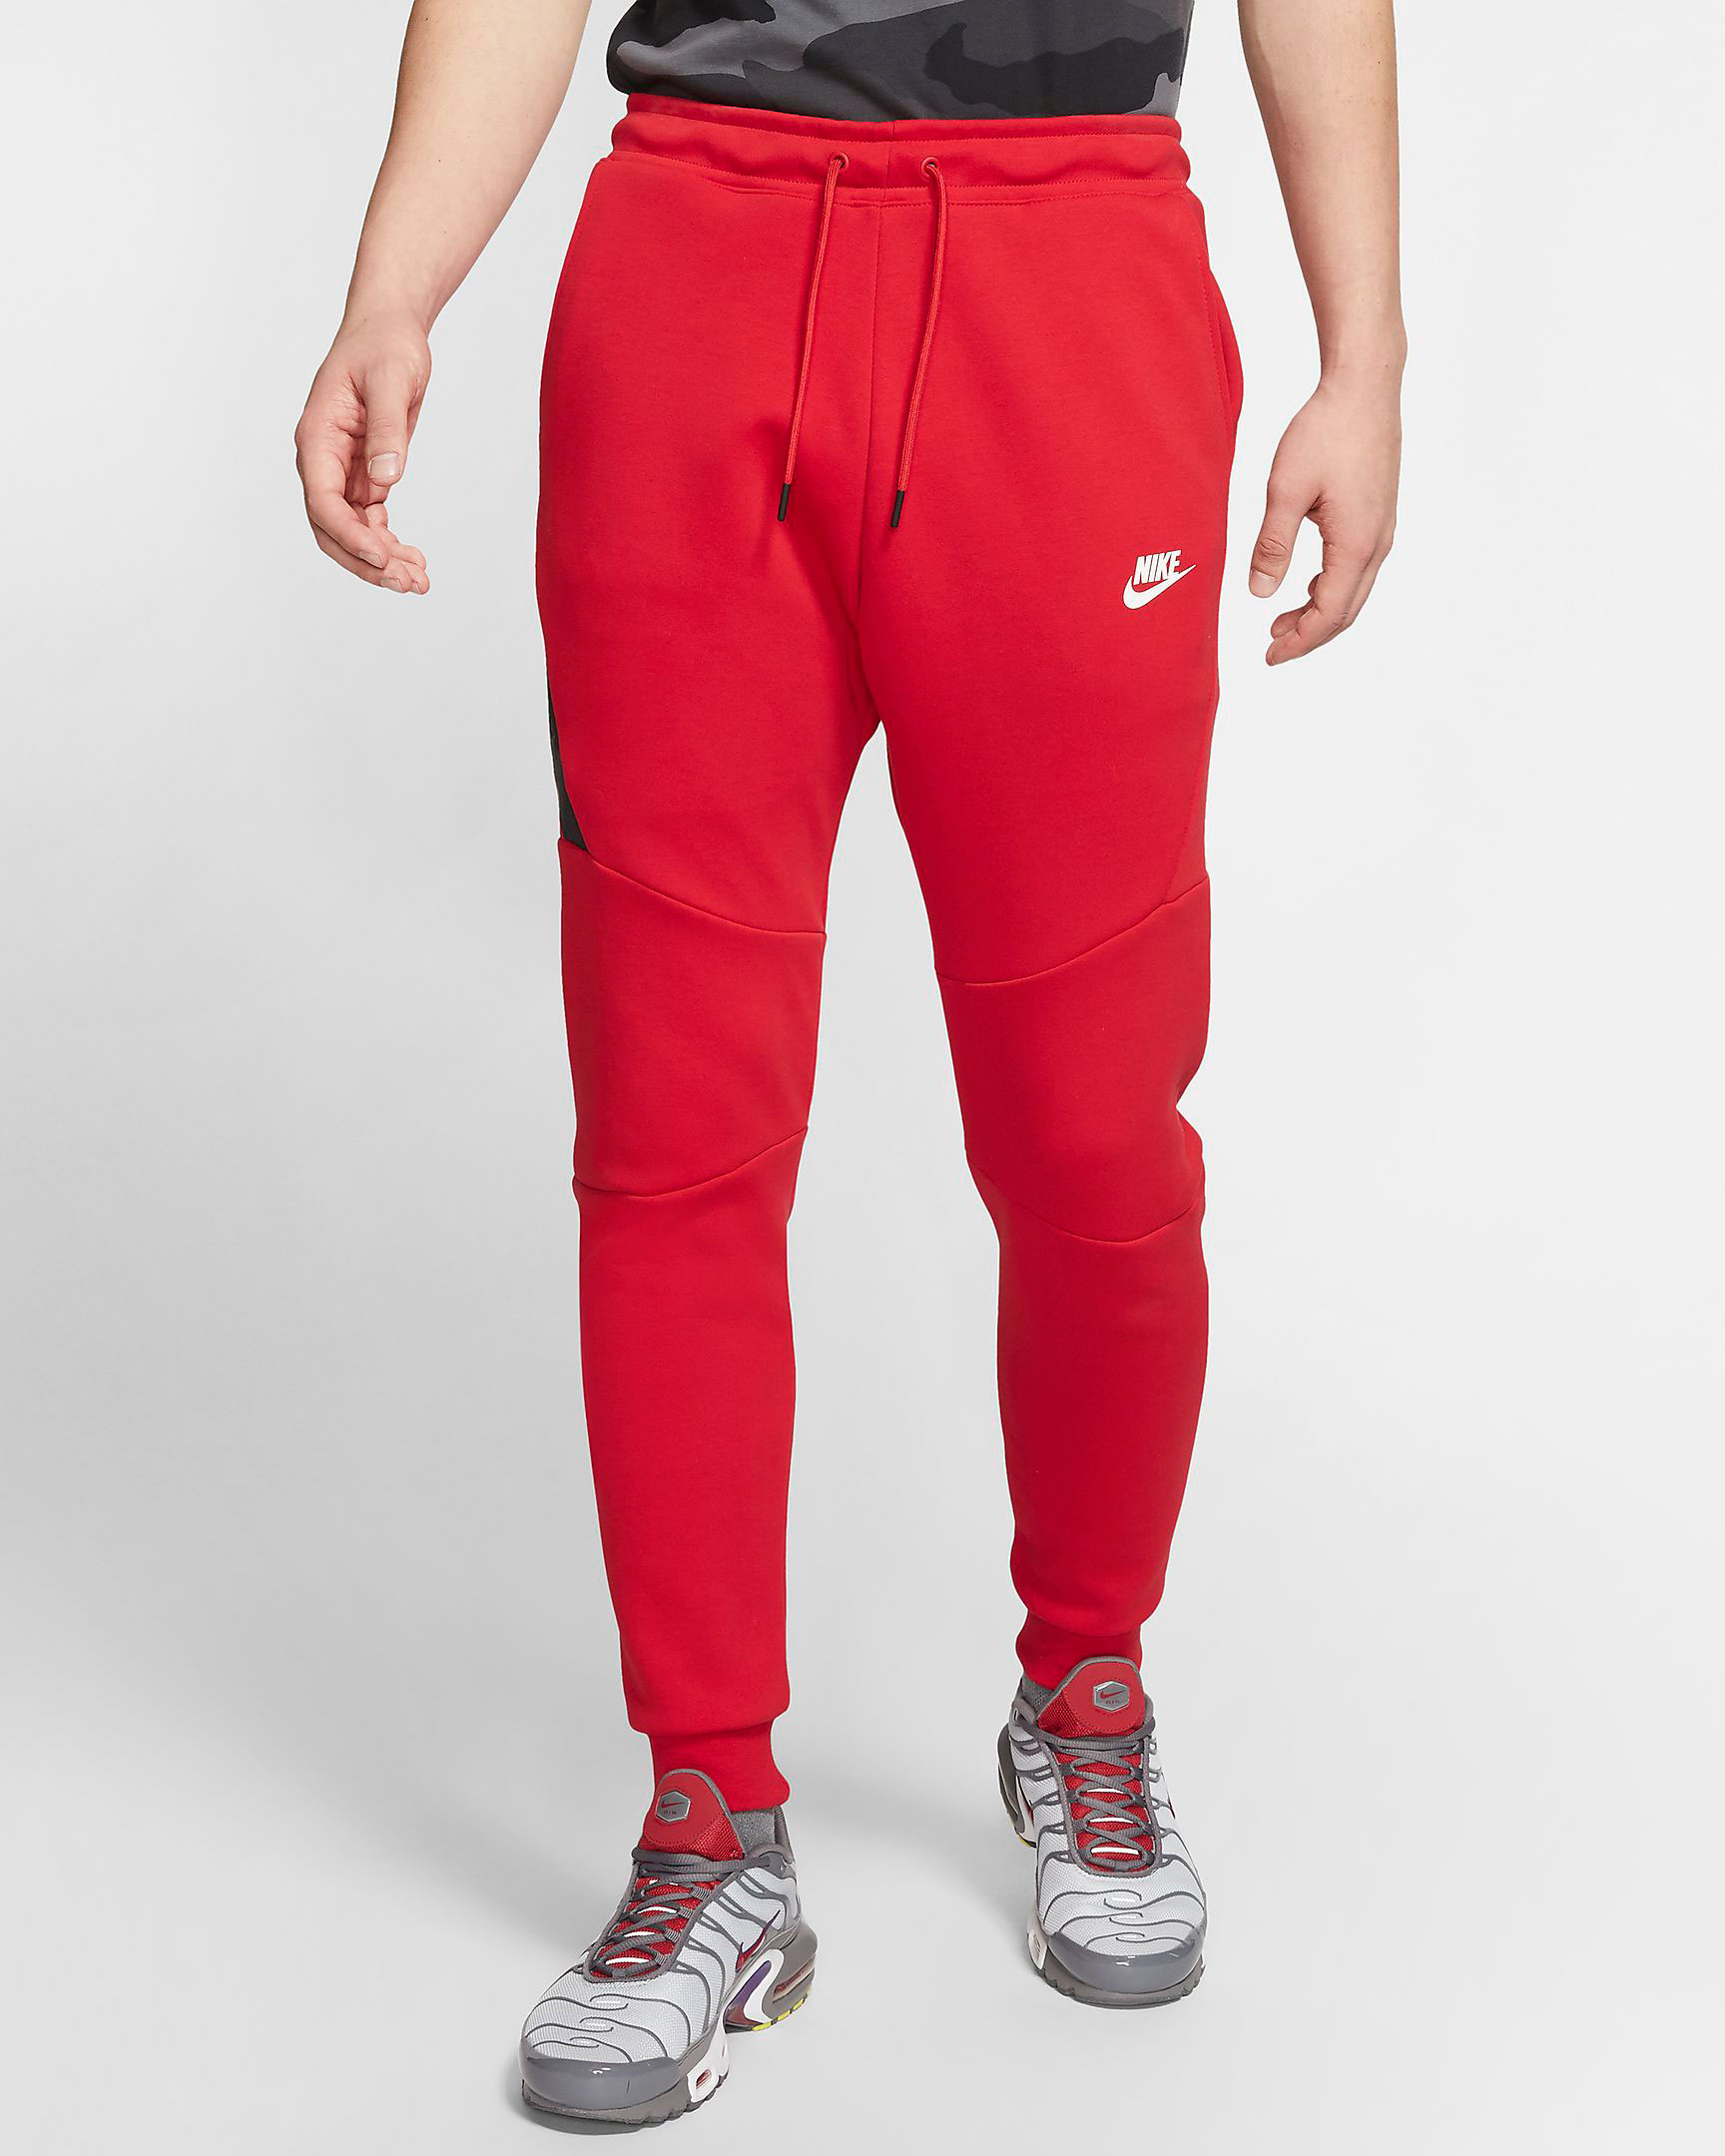 nike-red-tech-fleece-jogger-pants